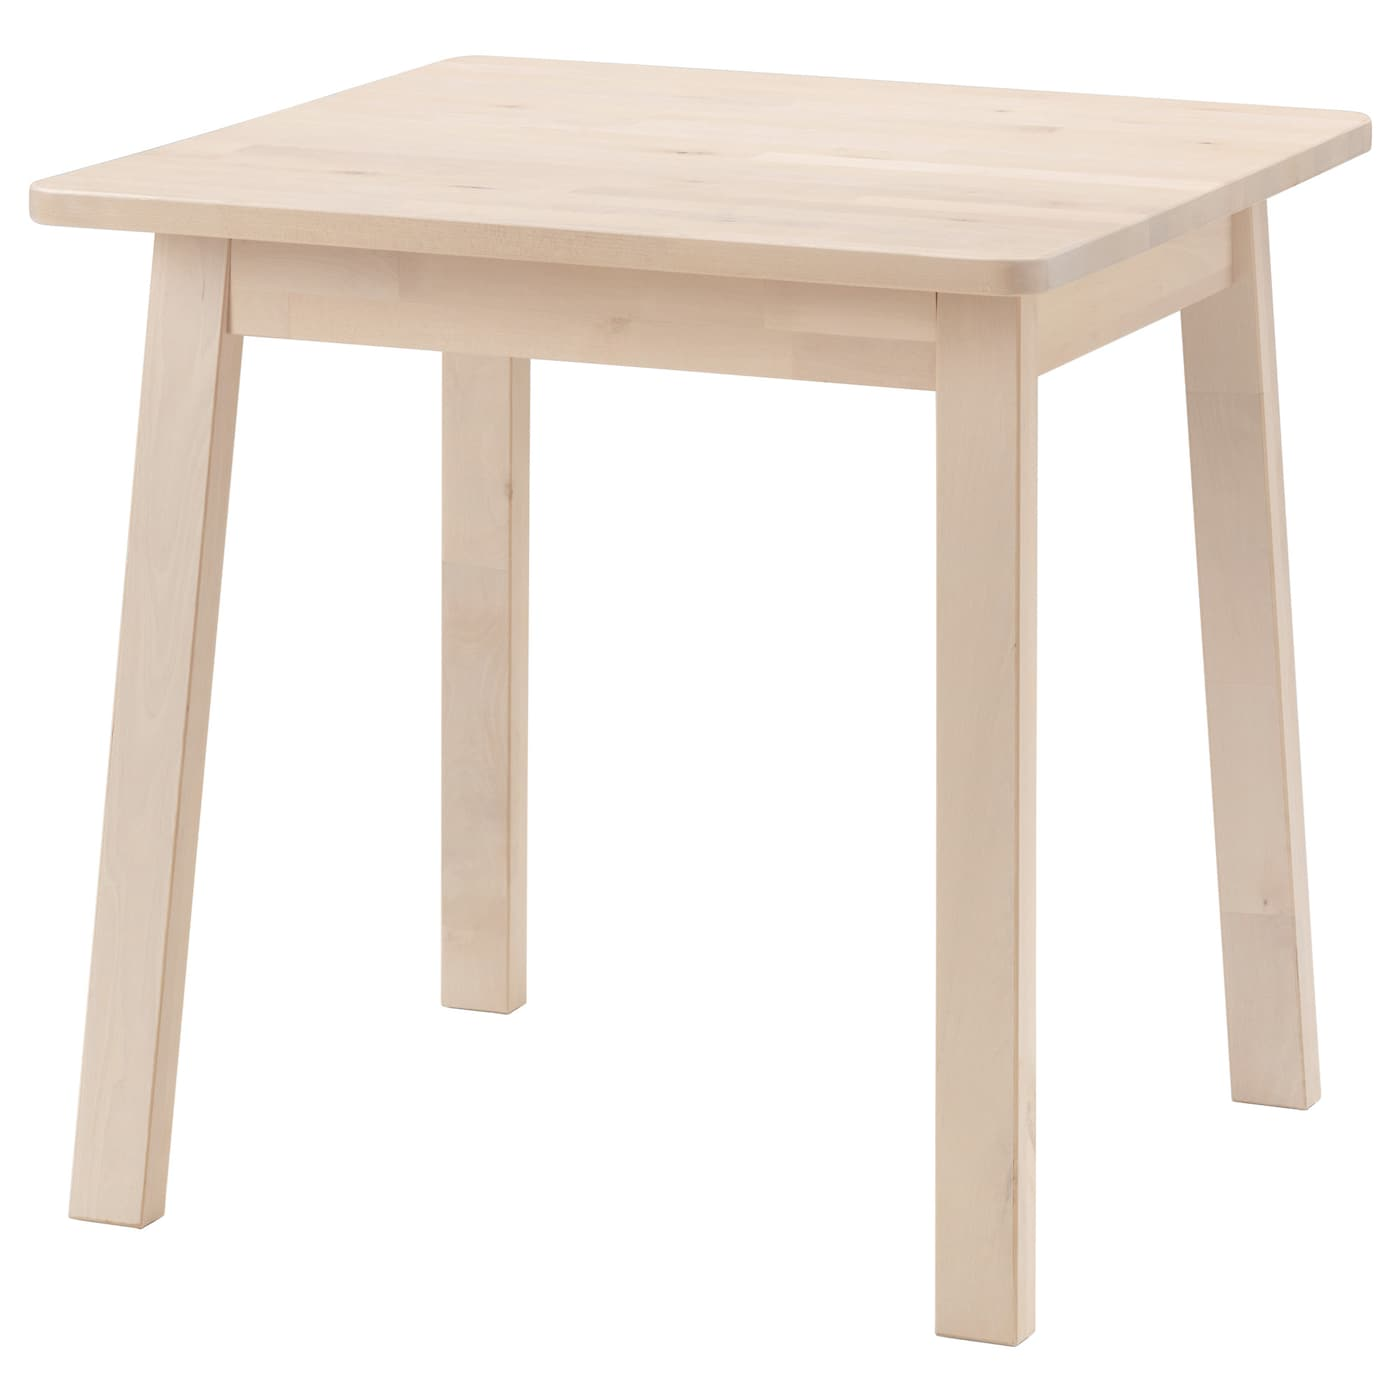 Small Dining tables Small Kitchen Tables IKEA